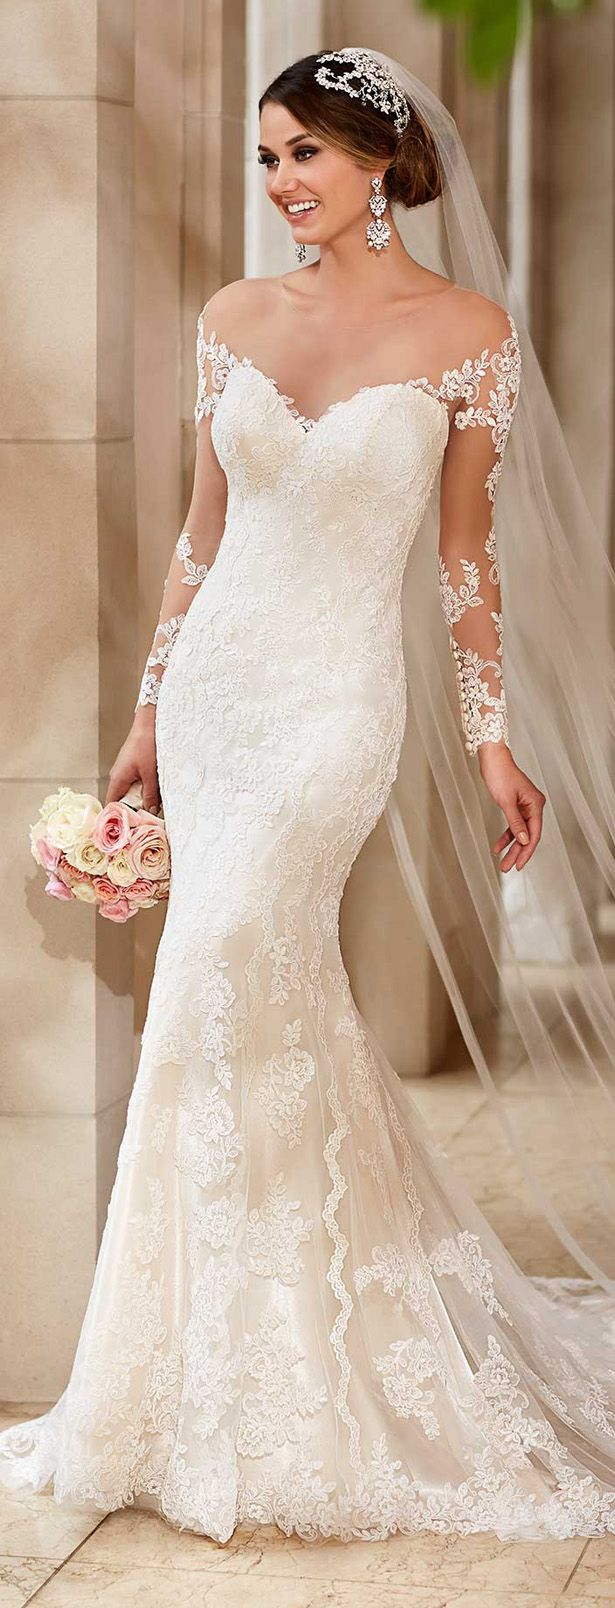 Image from http://bellethemagazine.com/wp-content/uploads/2015/06/stella-york-spring-2016-wedding-dress-6176_alt4_zoom.jpg.